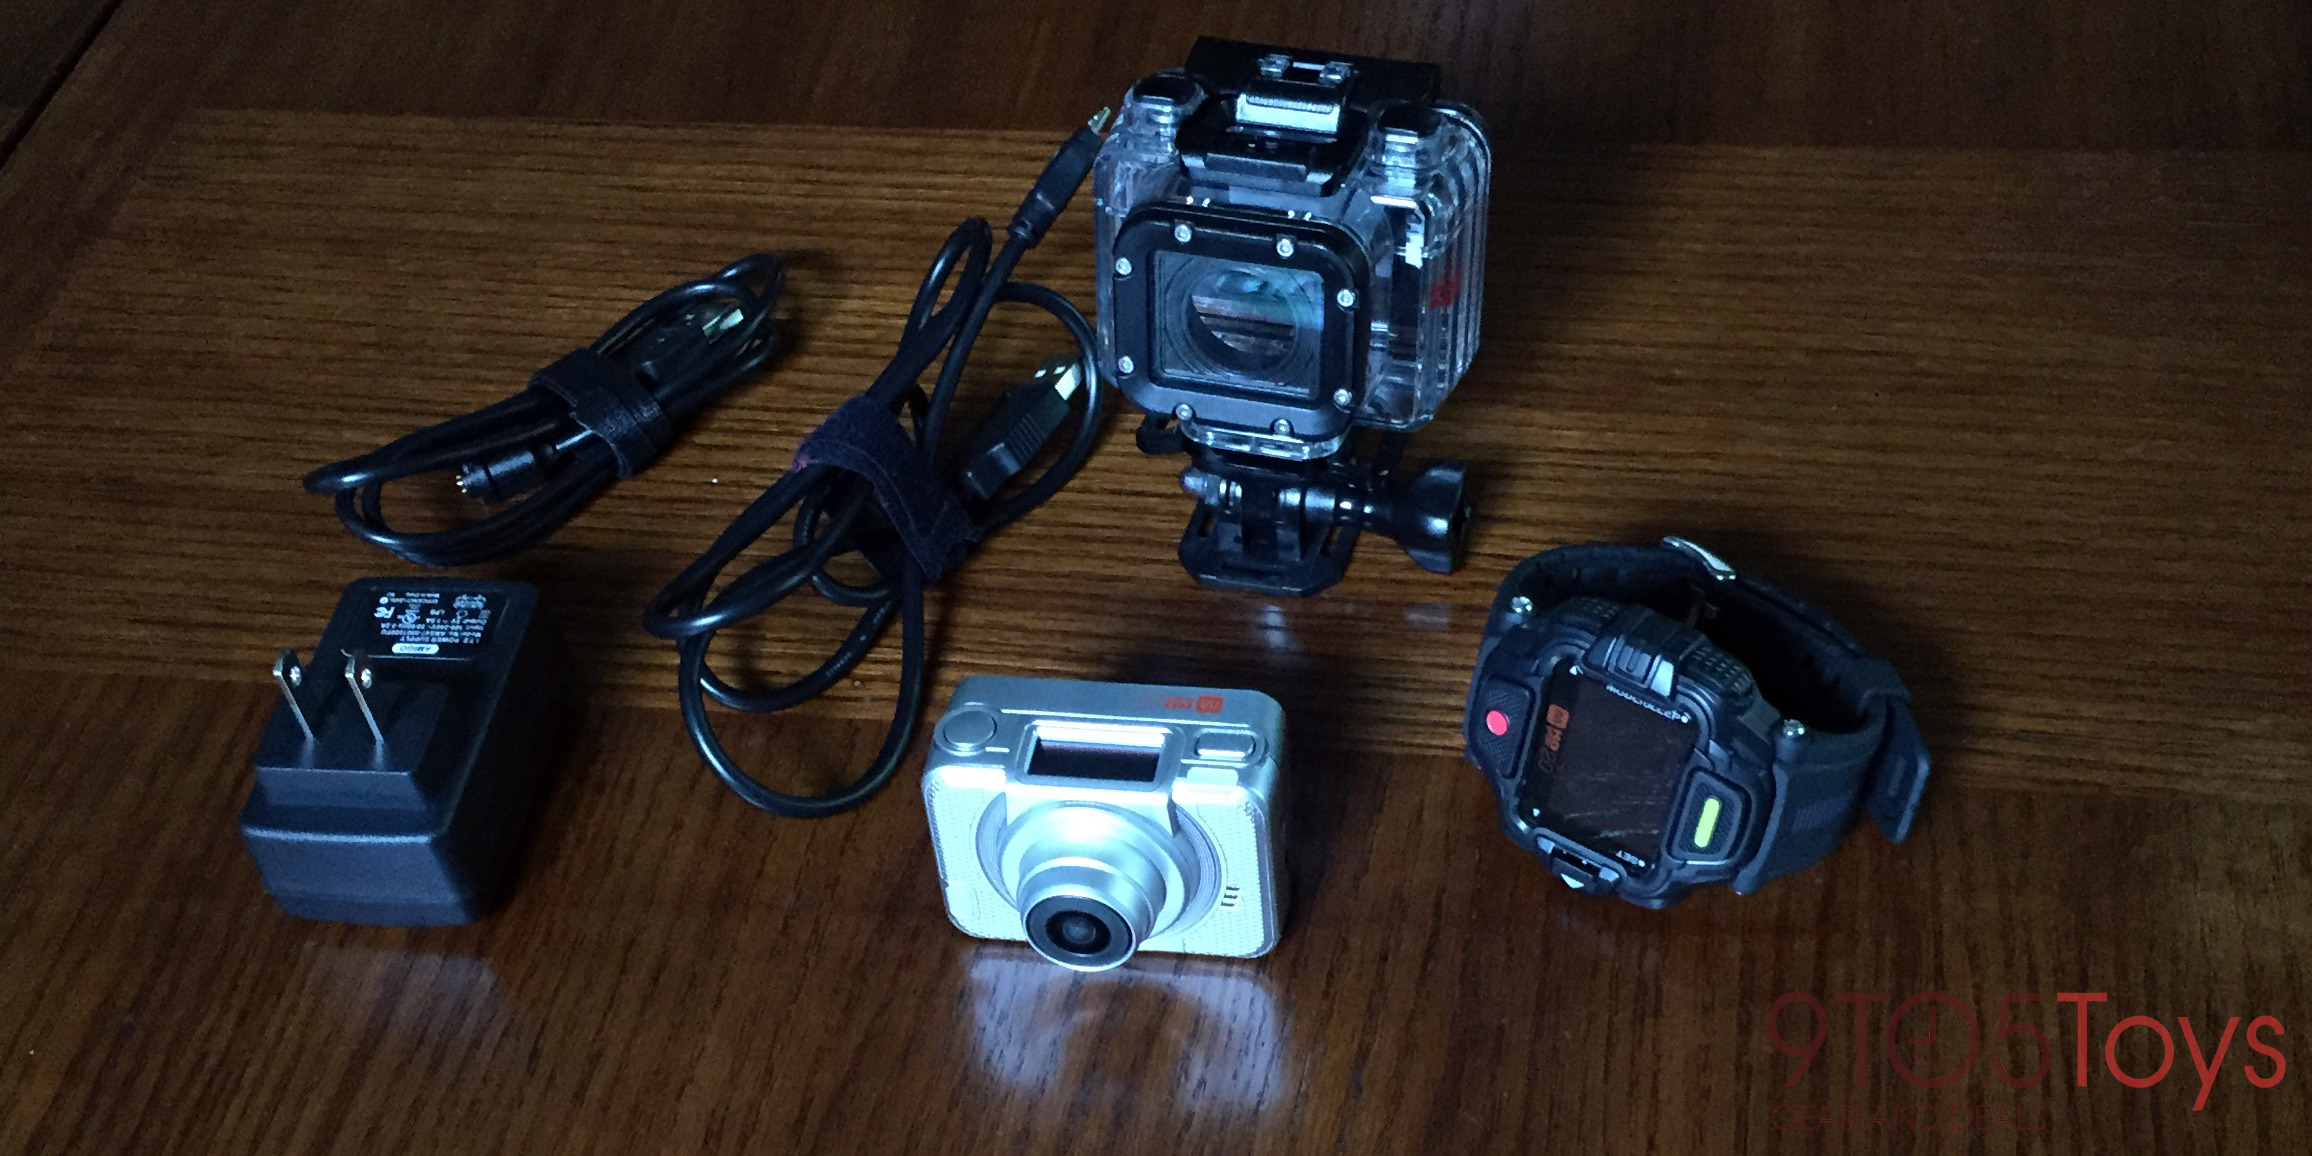 monoprice-action-camera-in-the-box-9to5toys